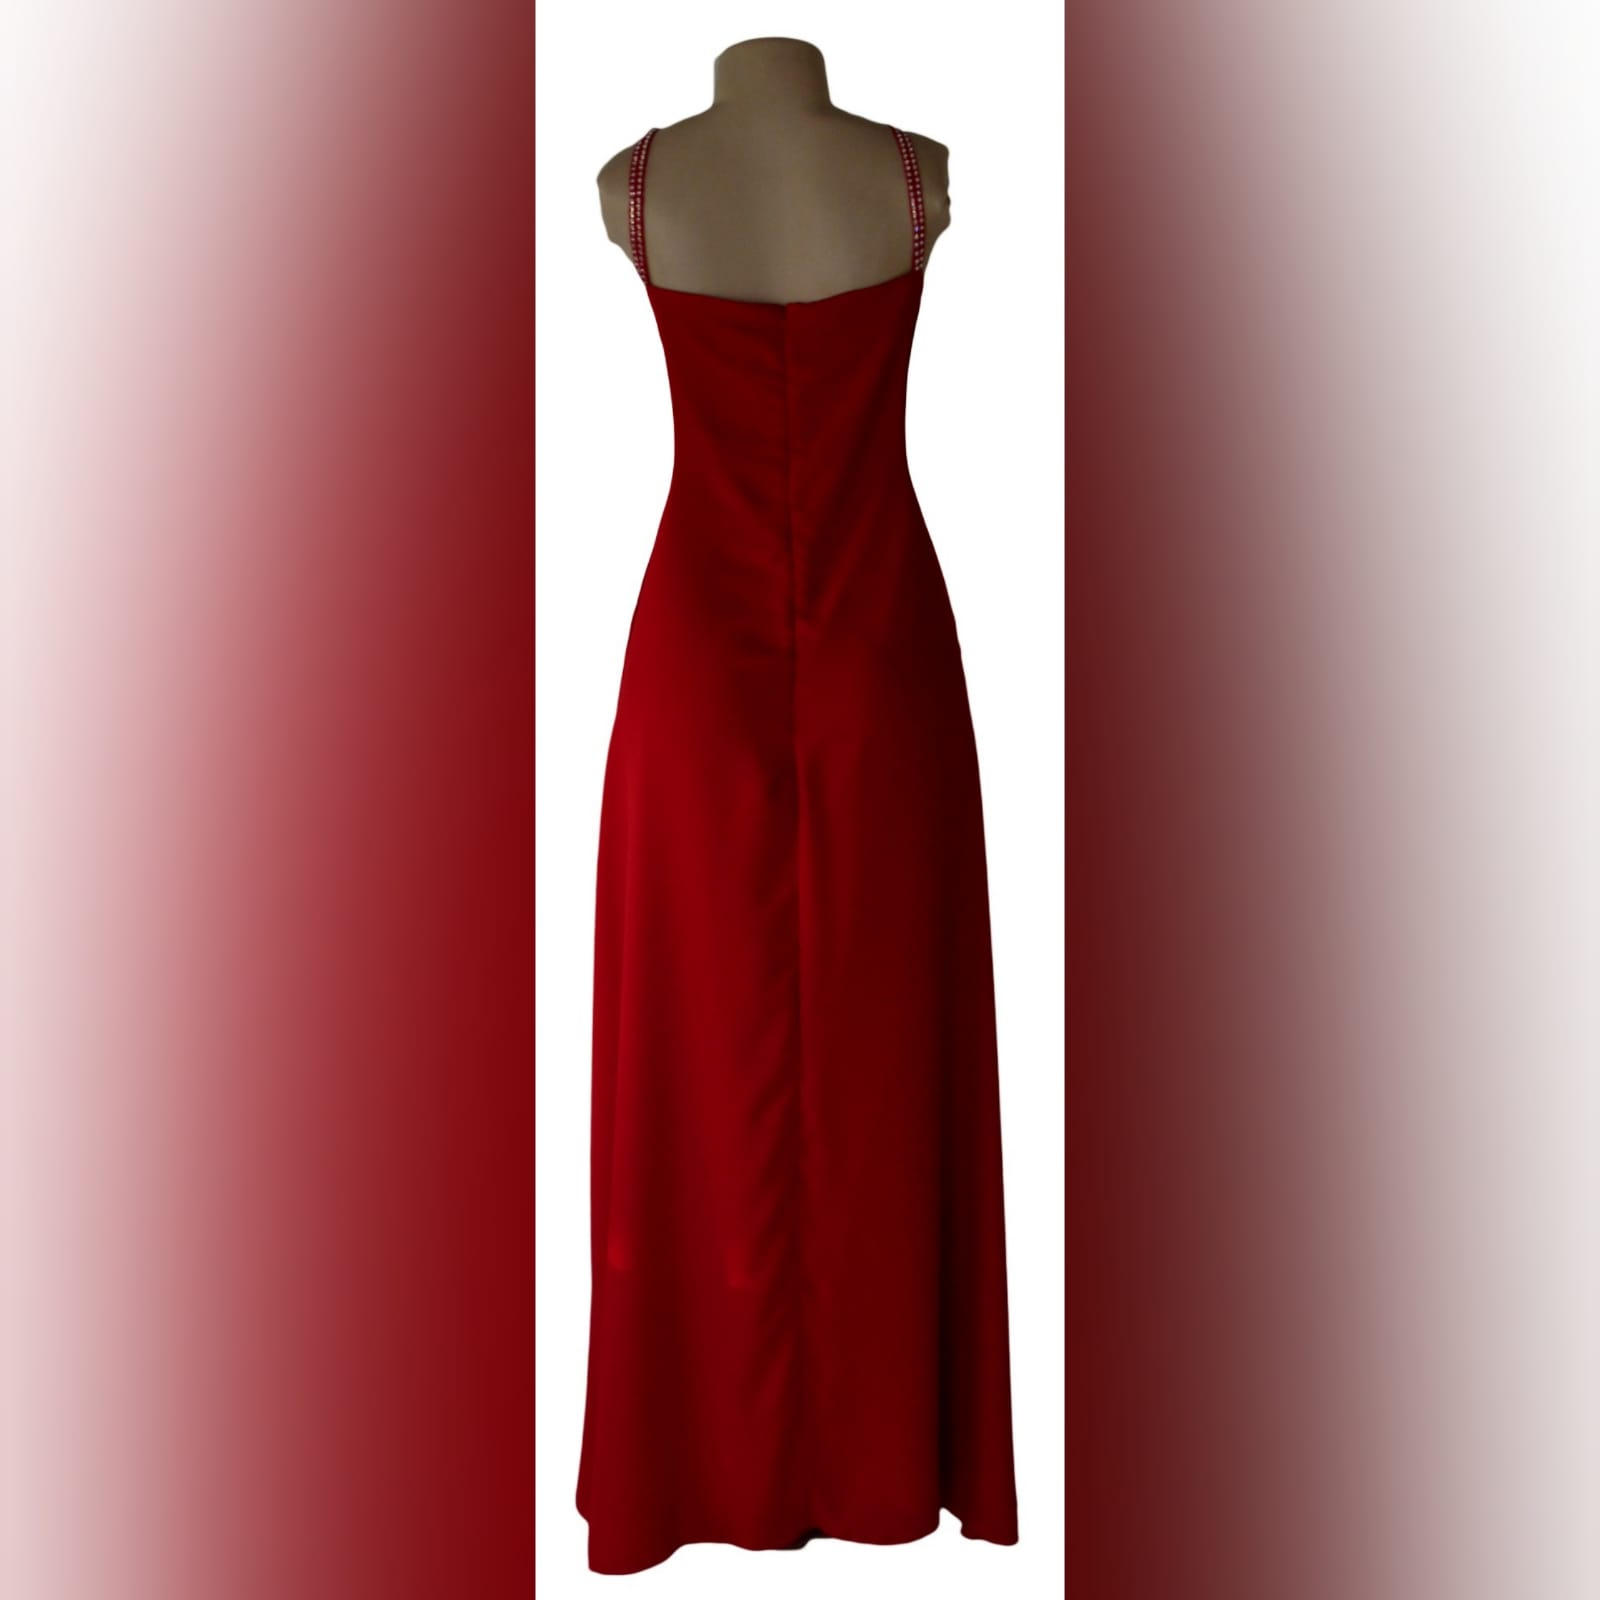 Bright red long crossed slit evening dress 2 bright red long crossed slit evening dress with a ruched bodice and hip. Shoulder straps detailed with diamante.